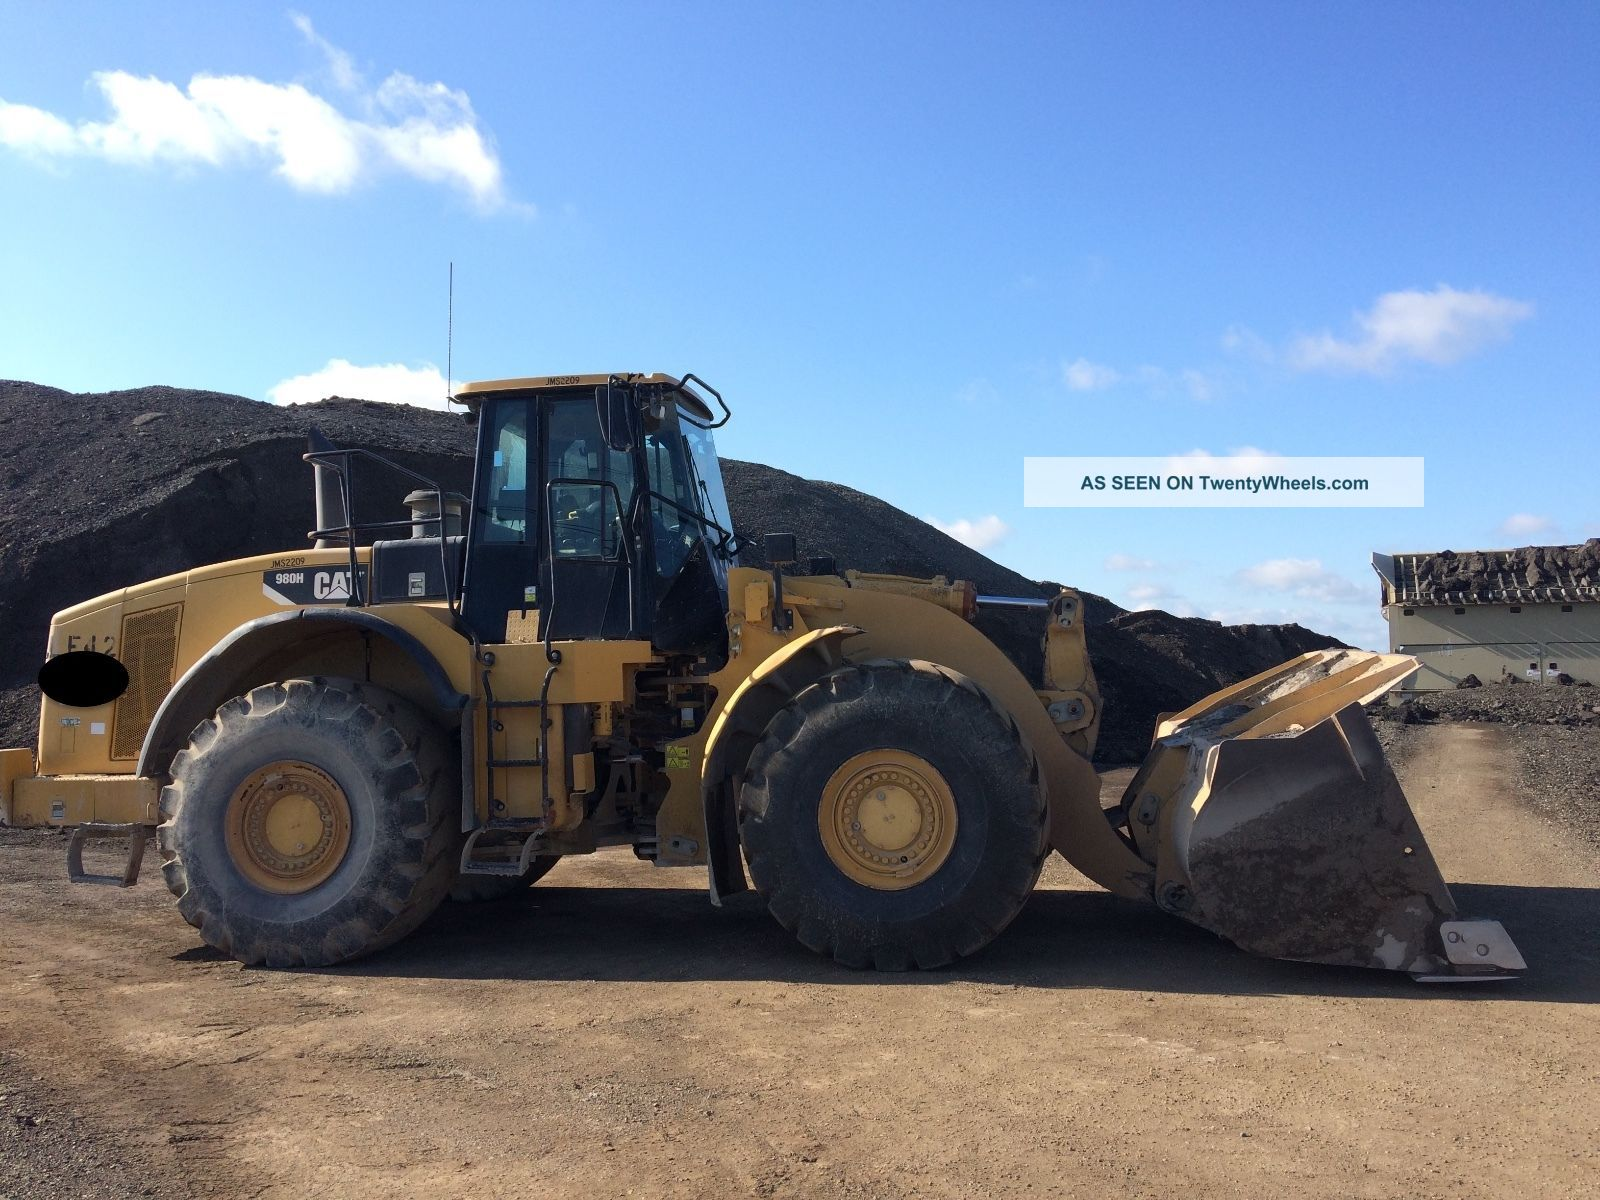 2007 Caterpillar 980h Wheel Loader; Tx Machine Wheel Loaders photo